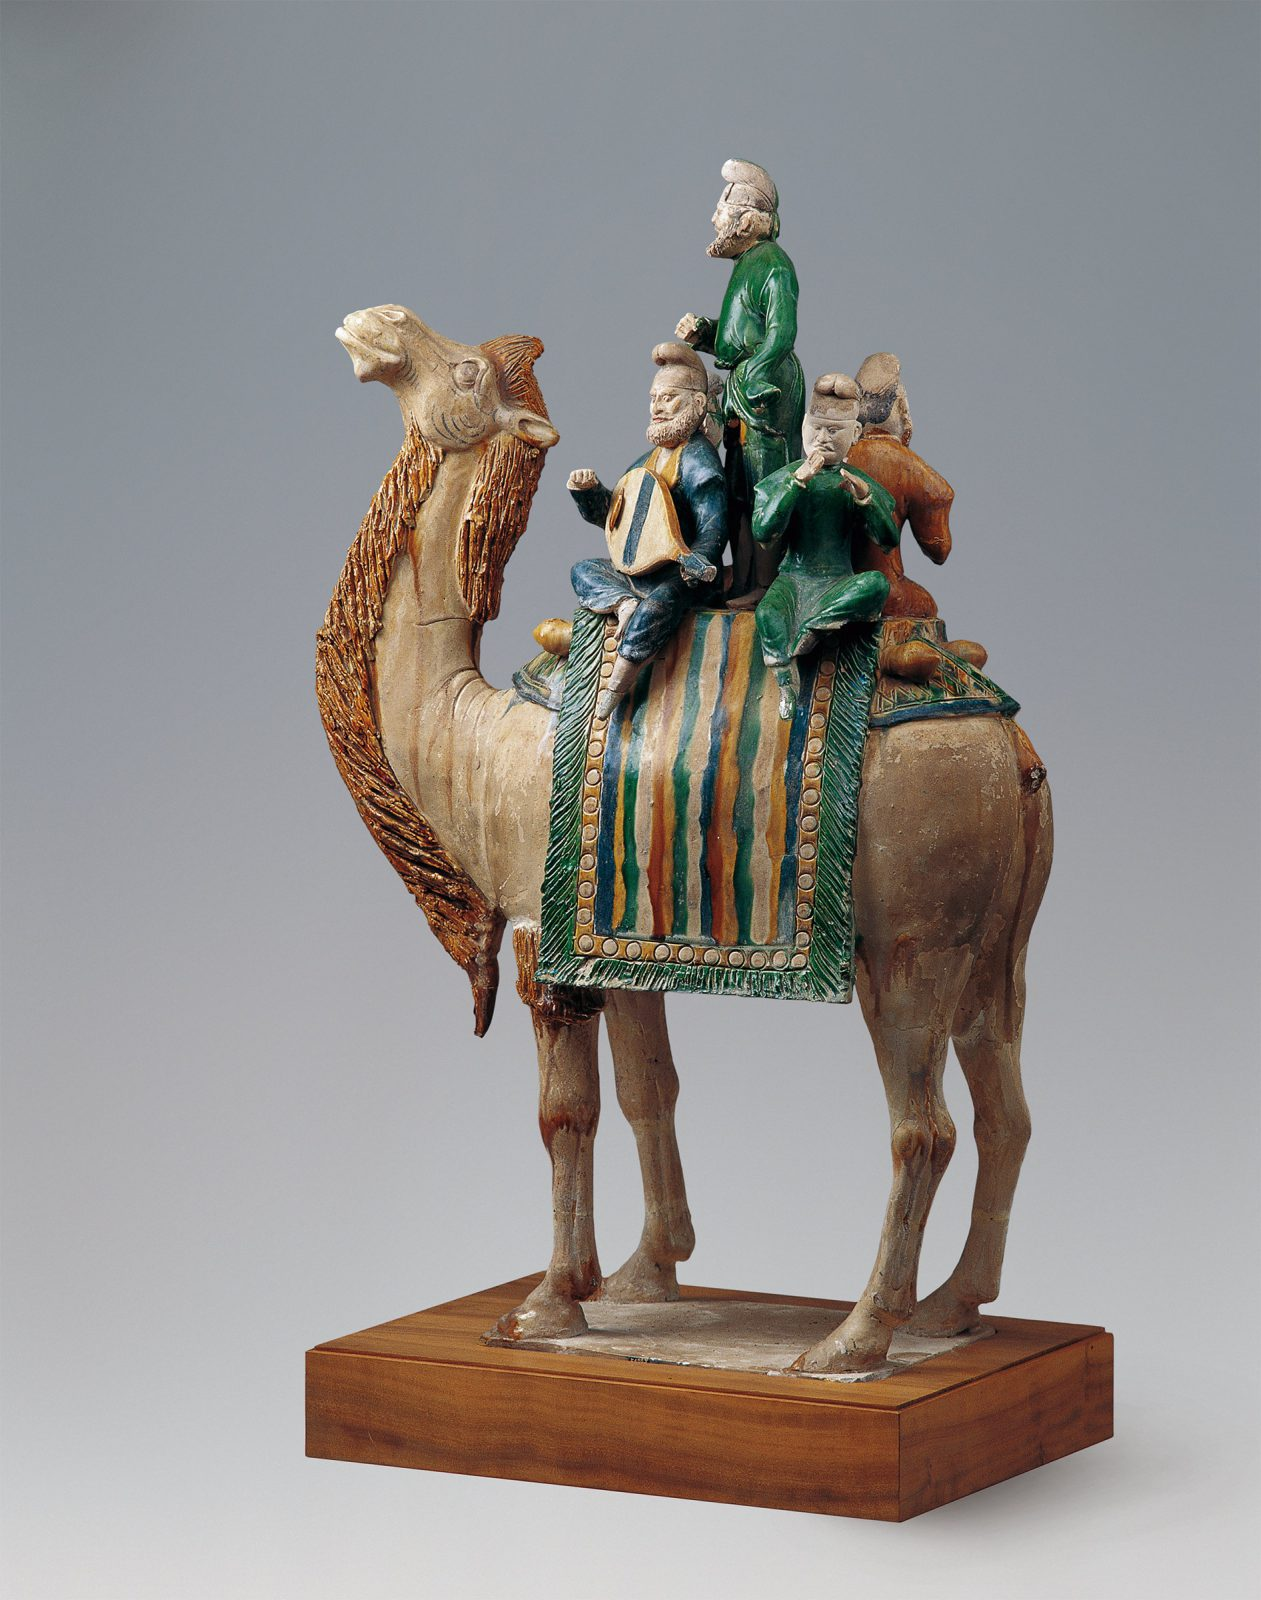 Four musicians sit on a camel and play.